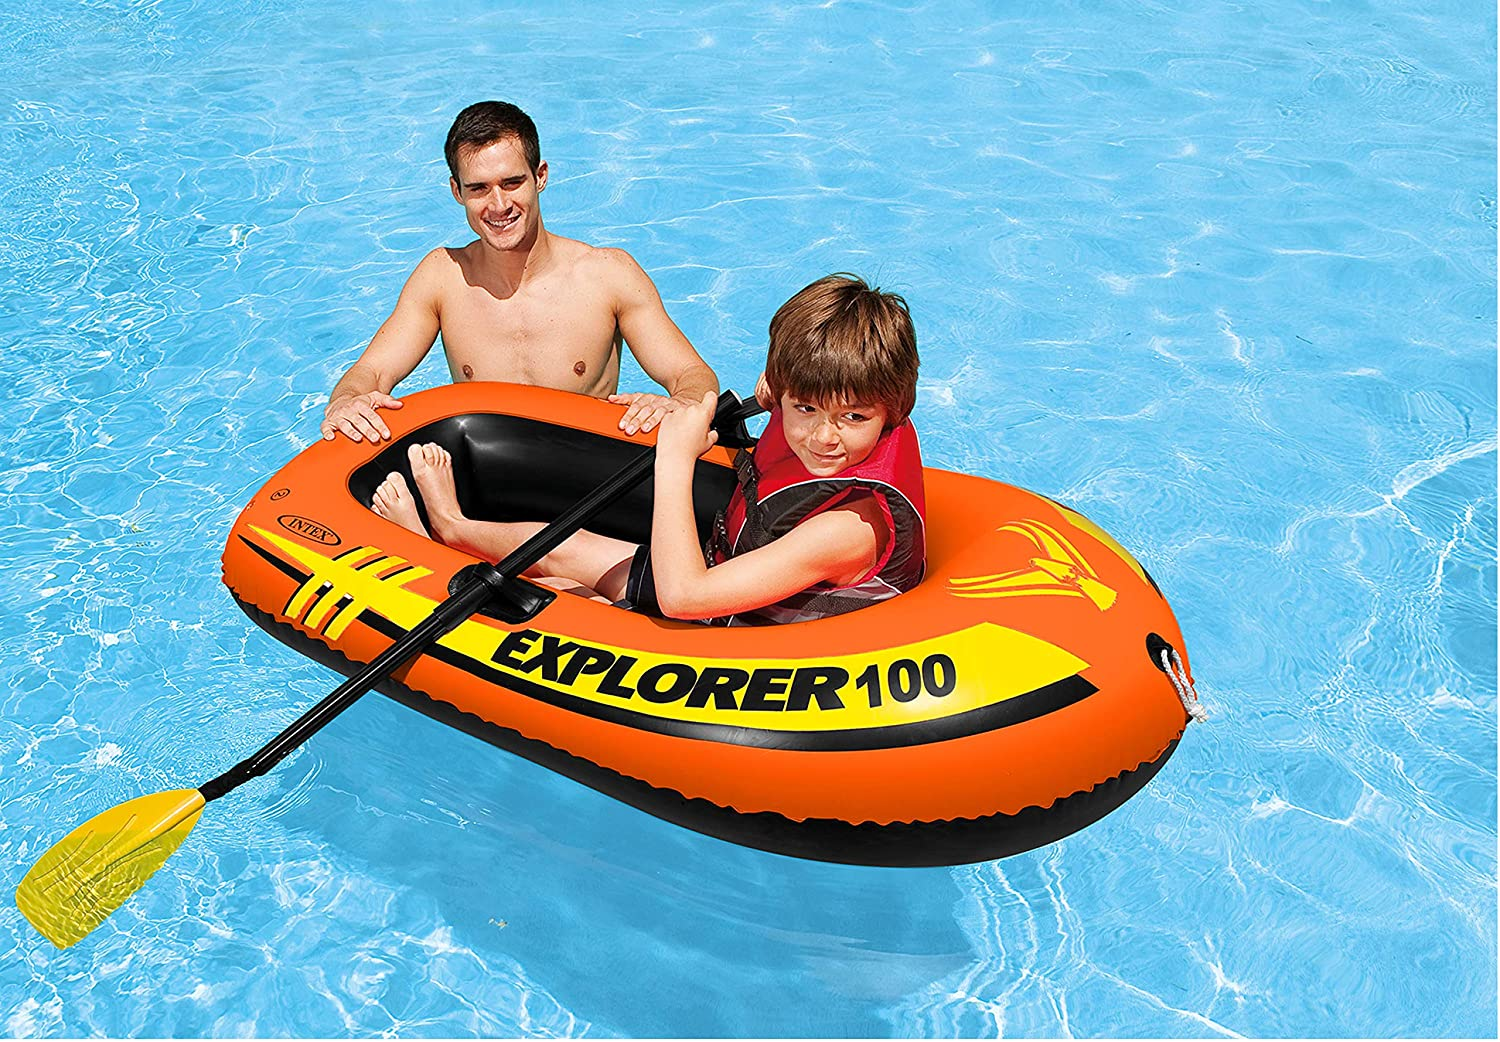 Amazon.com: Intex Explorer 100 - Barco hinchable para 1 ...